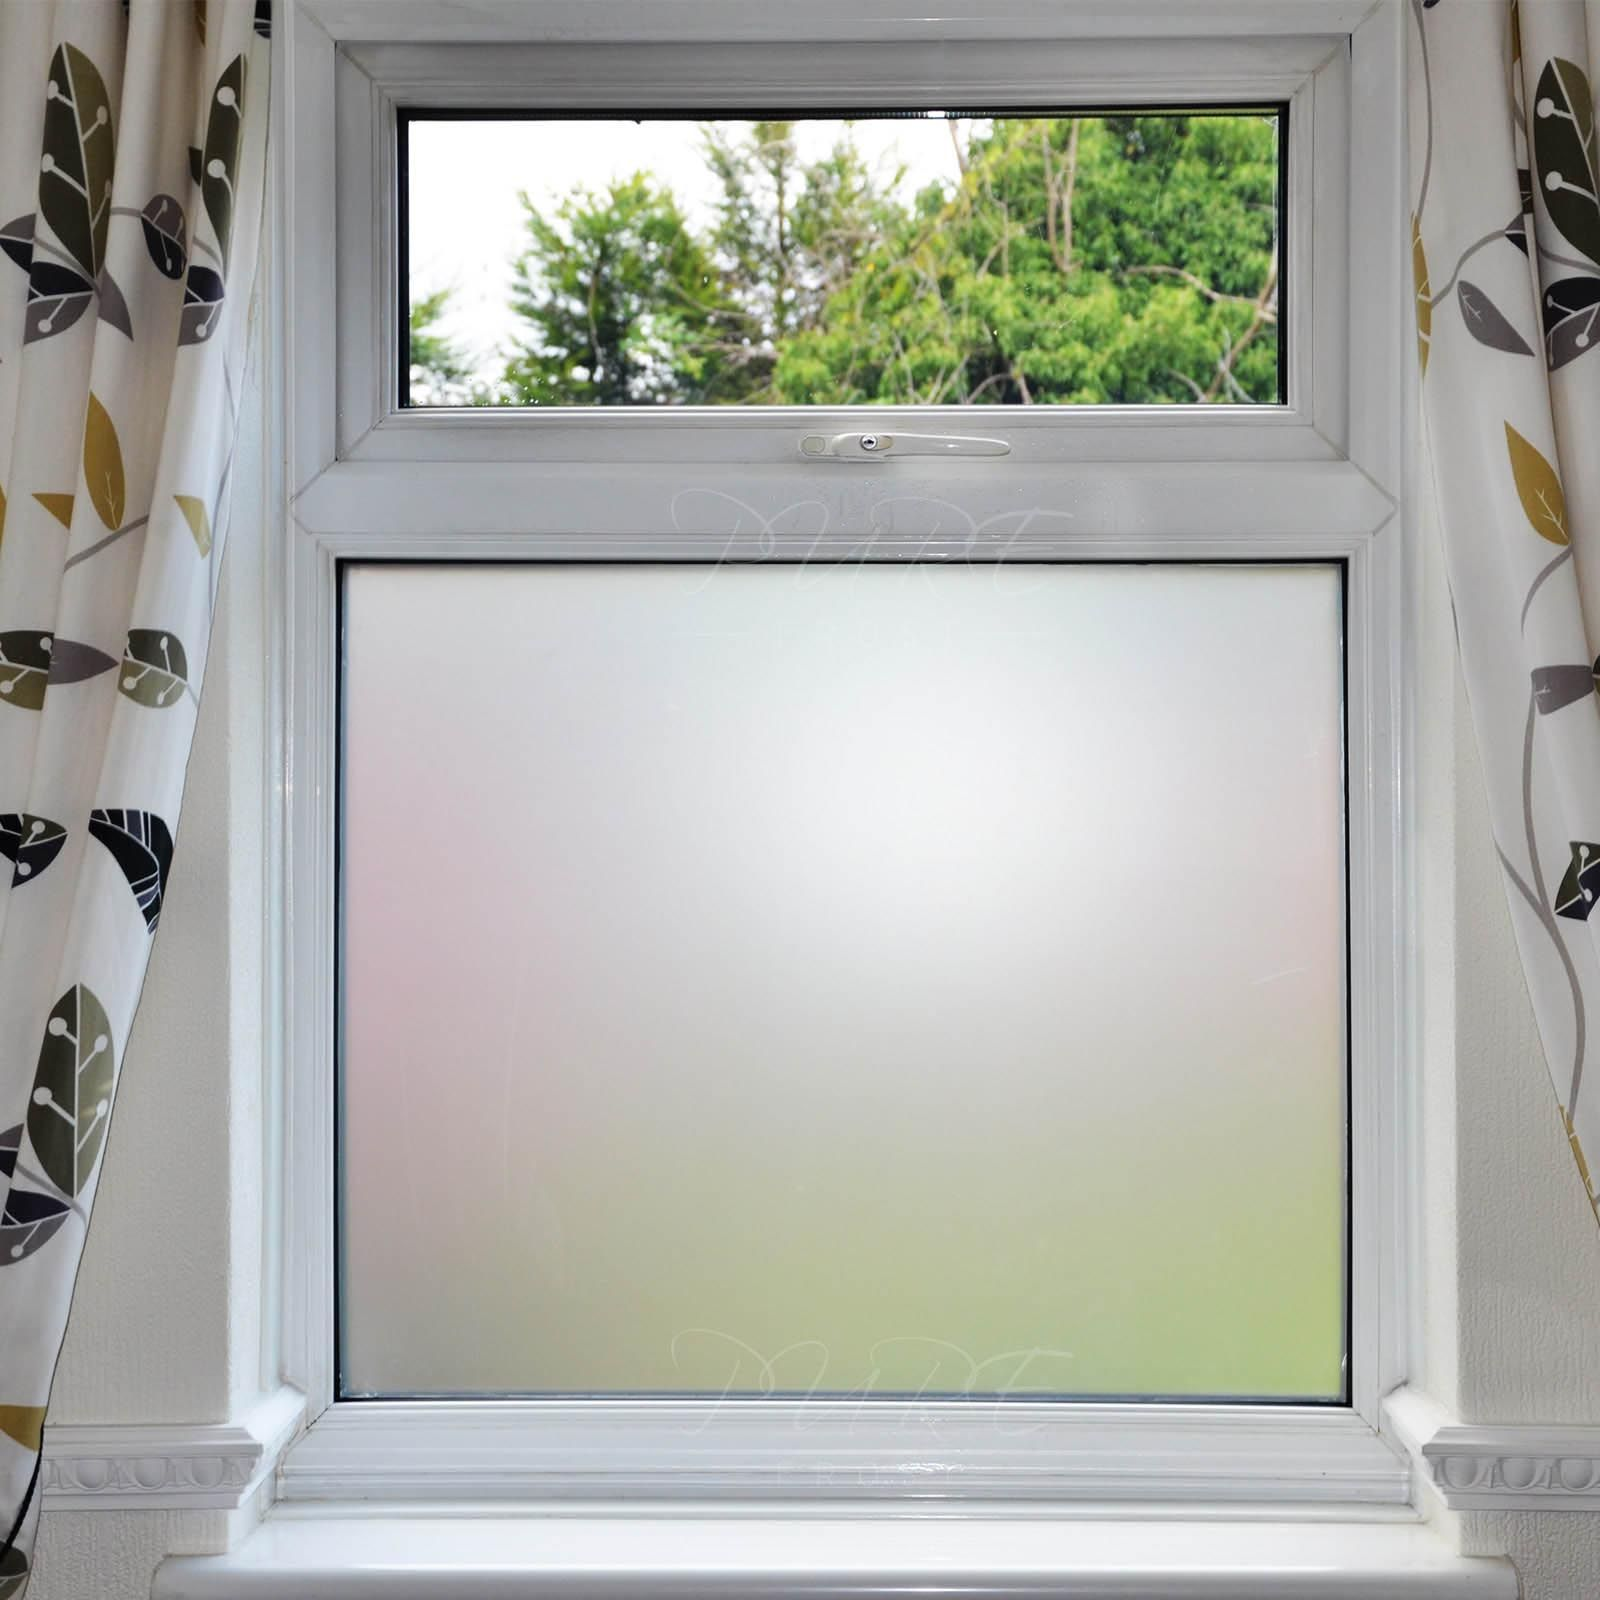 Bathroom Frosted Window Film Window Treatments Pinterest Frosted Window Window Film And